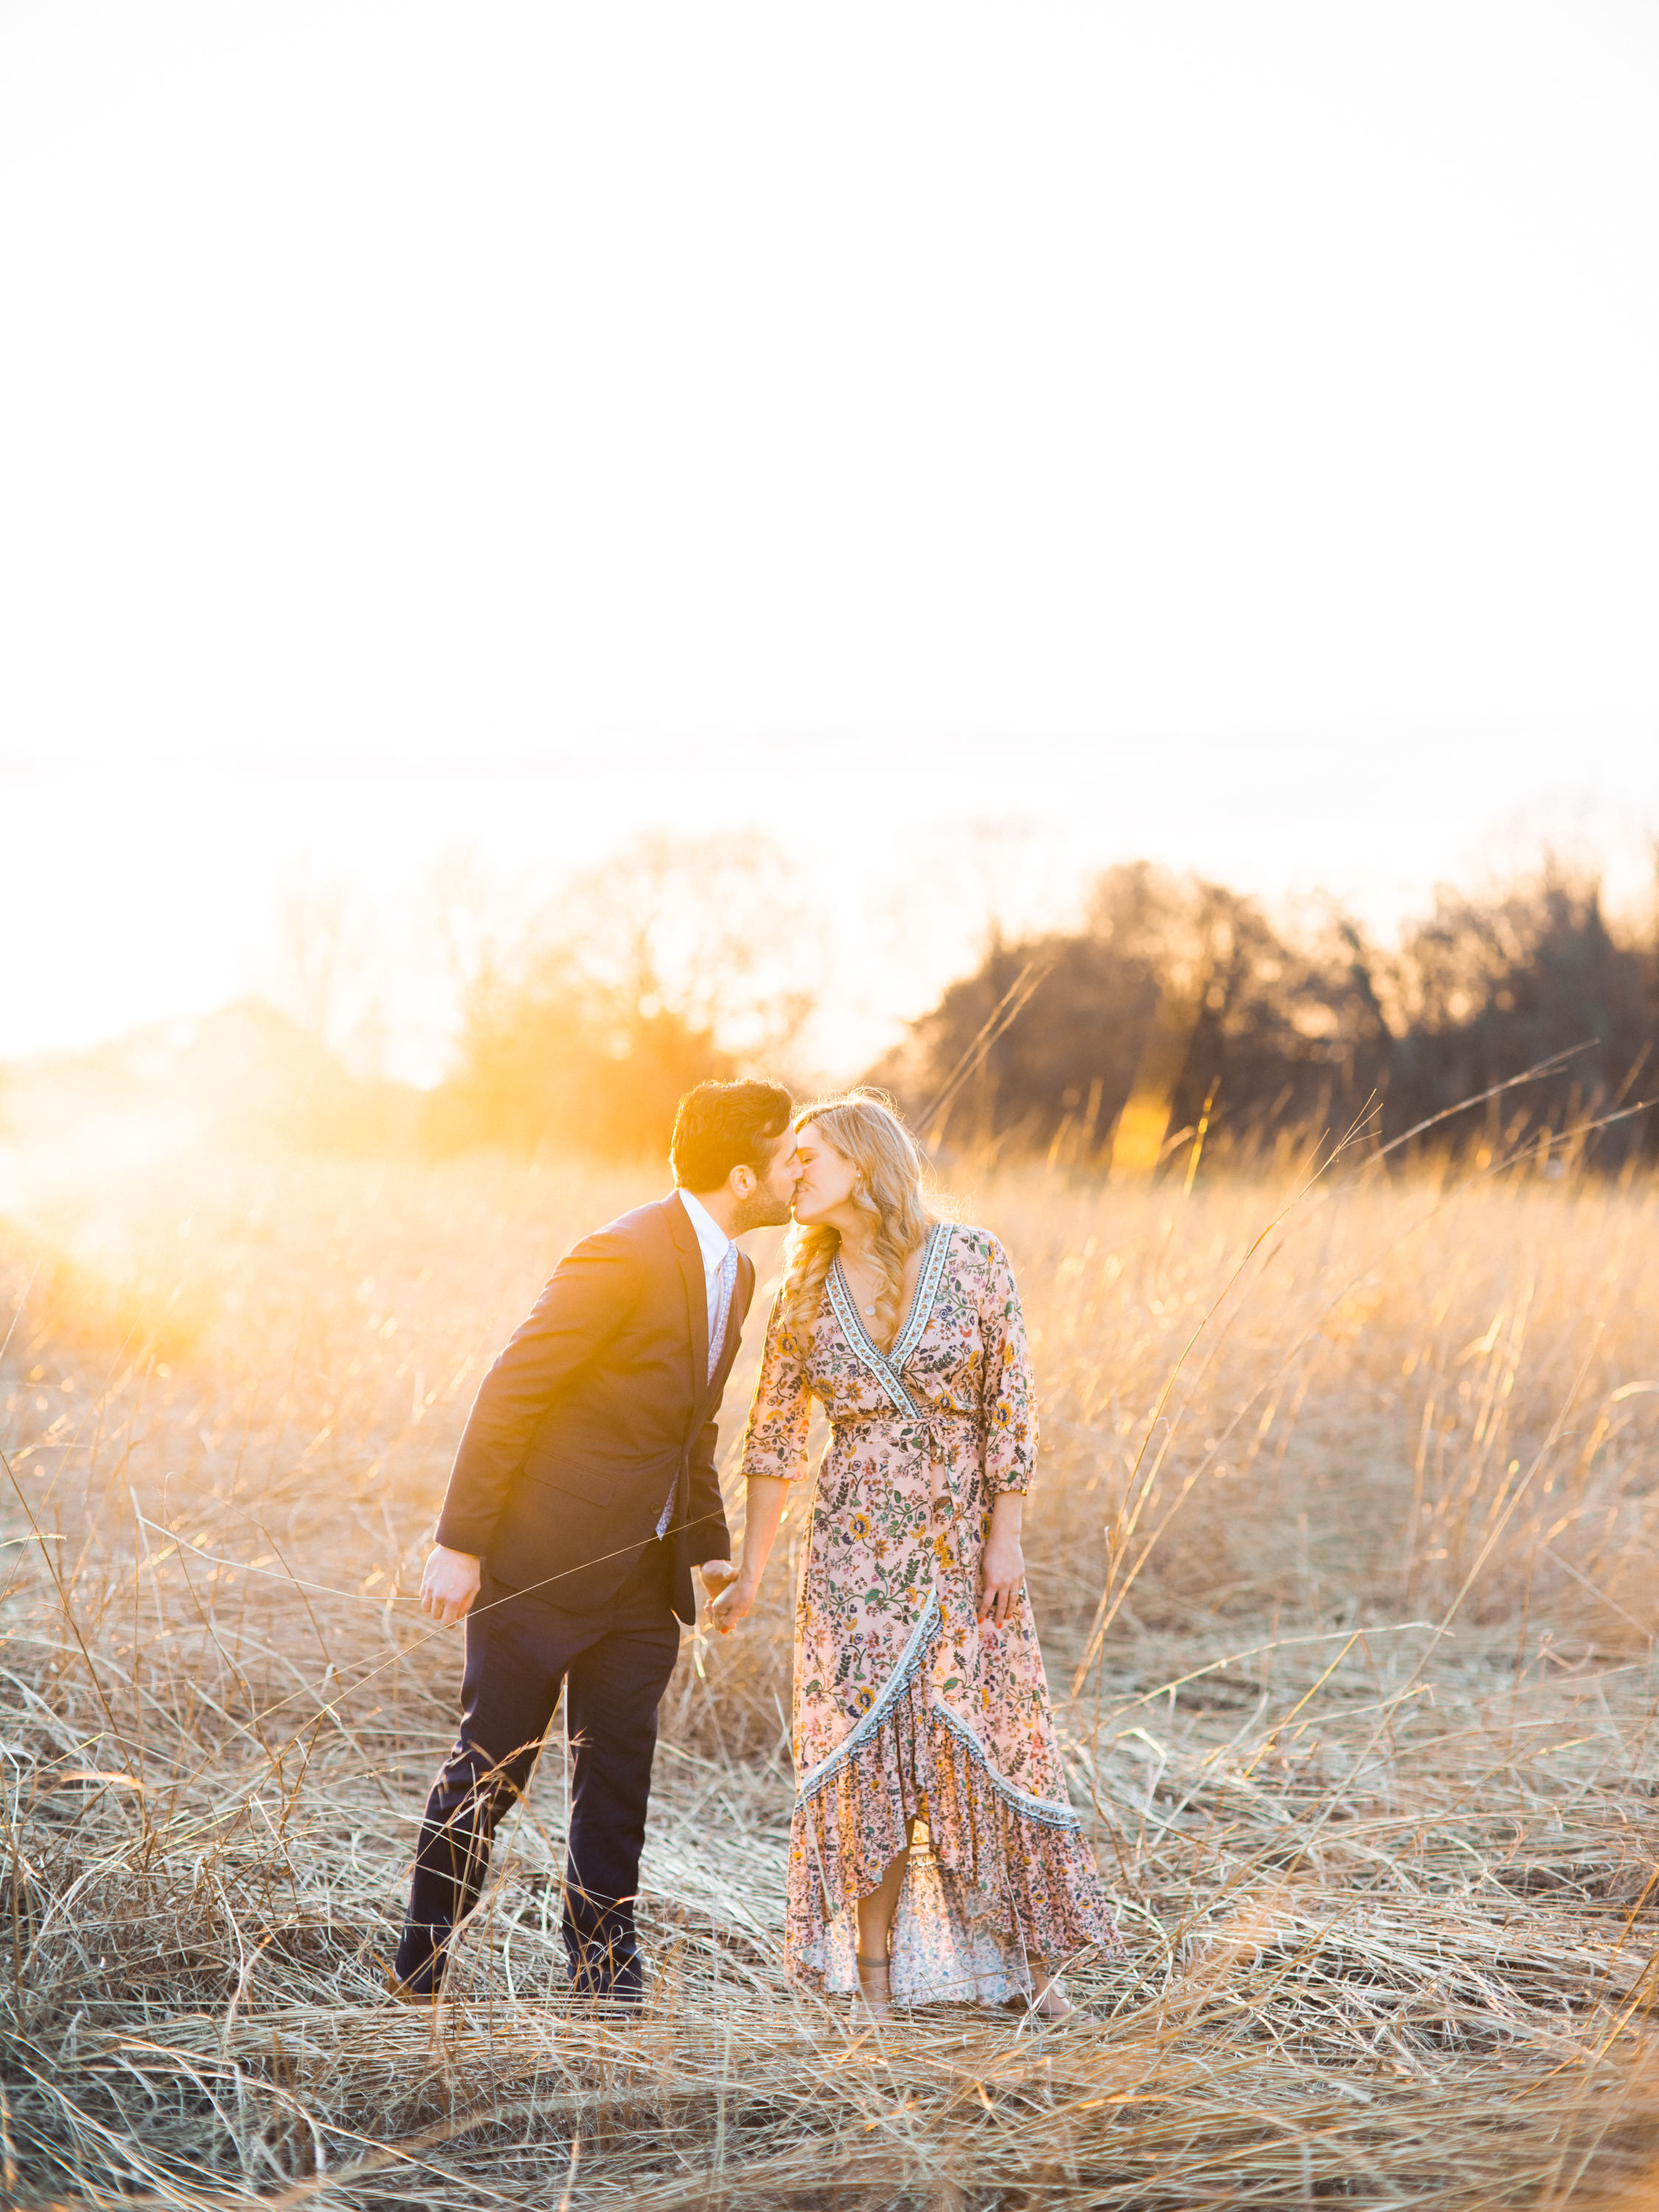 Benny & Sarah Engagement Session at Bernheim Arboretum (Web Use Only)-58.jpg